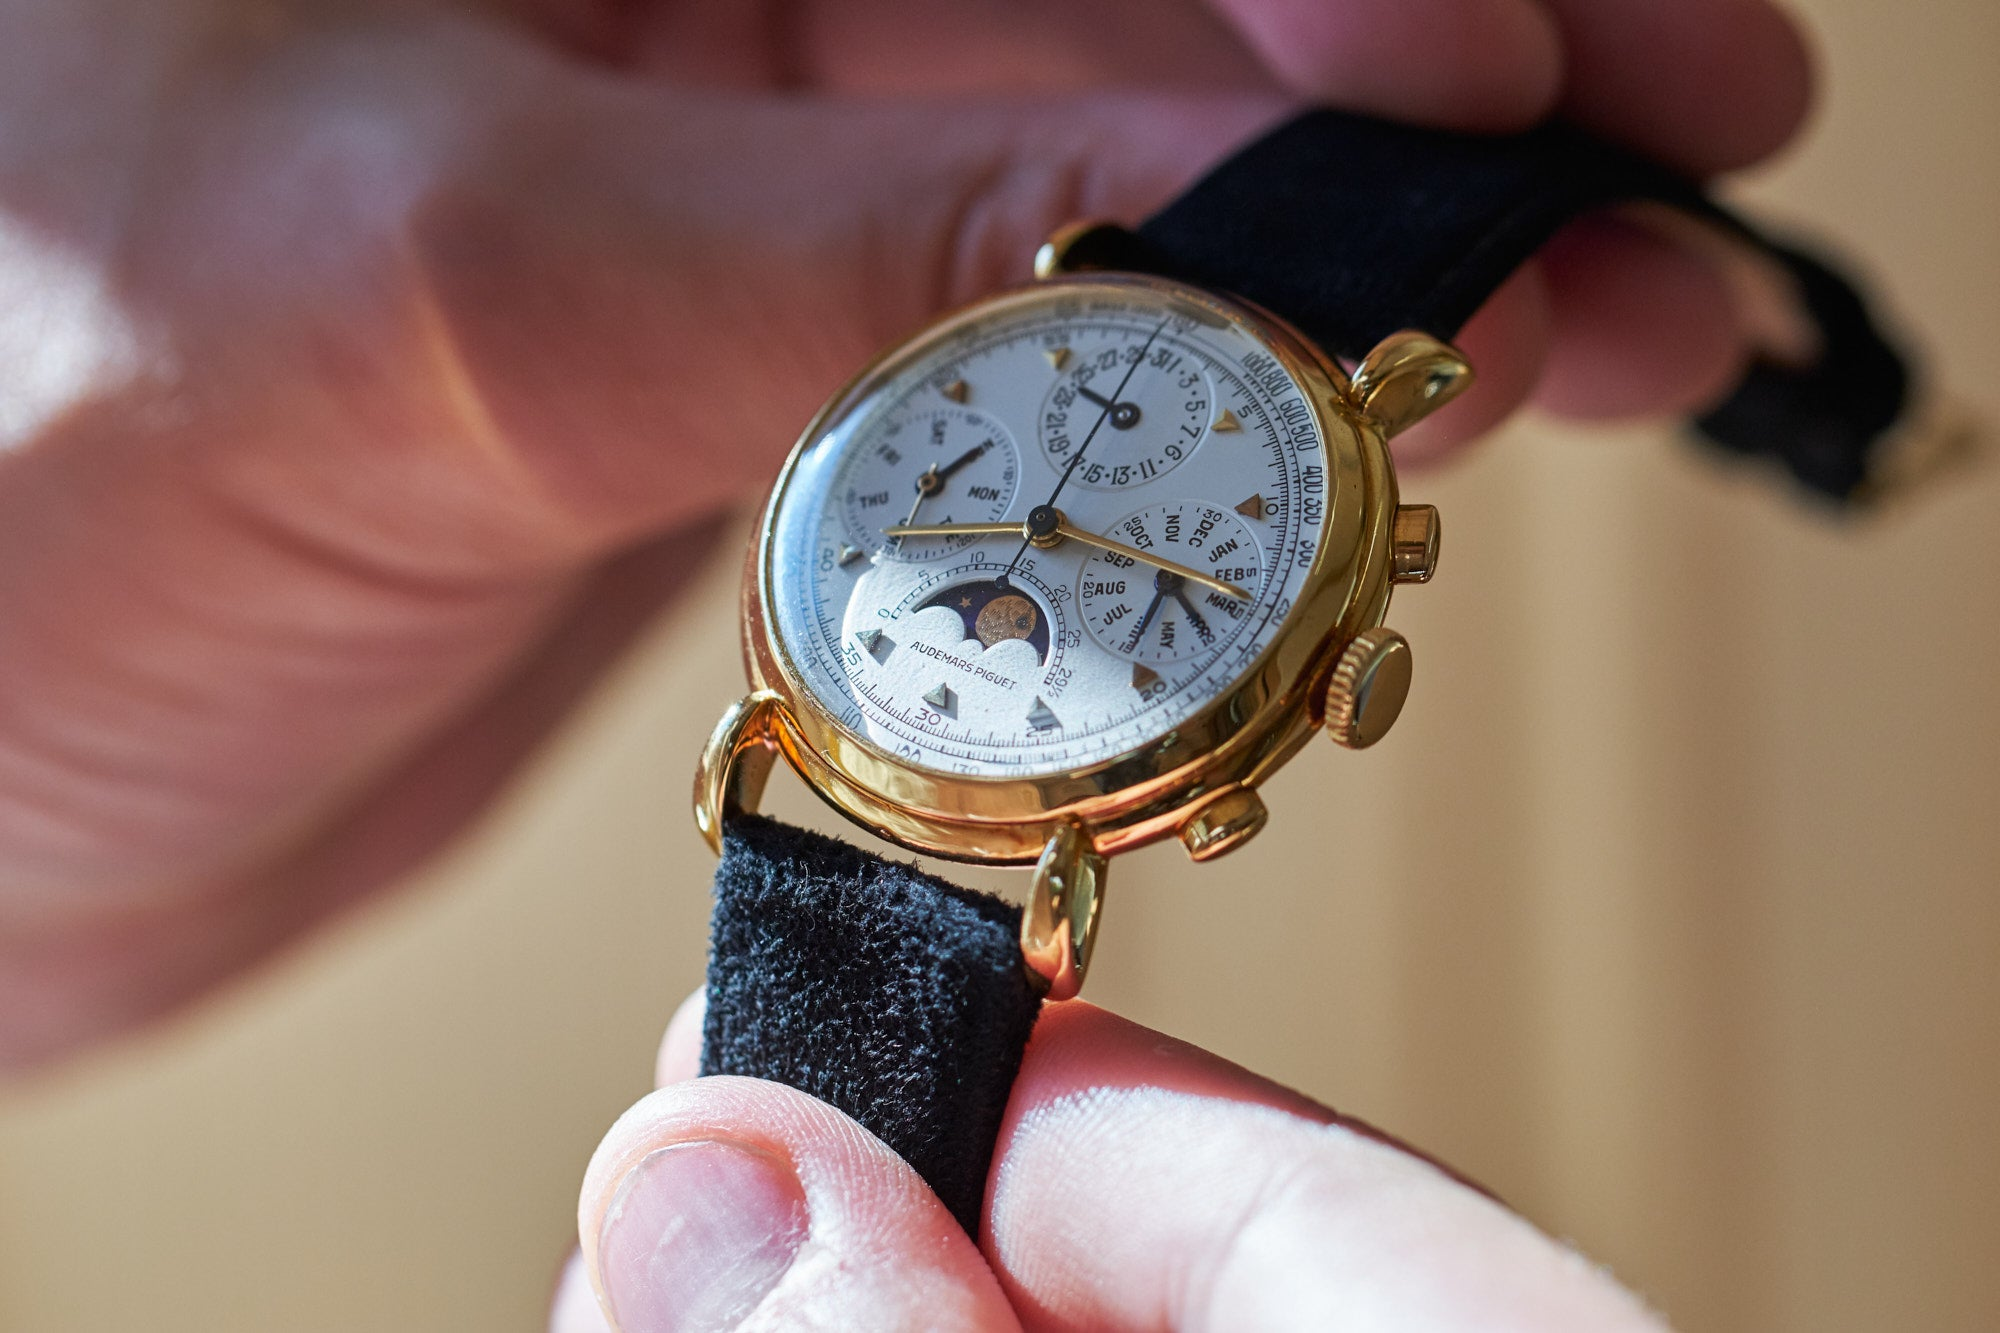 A Audemars Piguet perpetual calendard chronograph in yellow gold from the brands early days help in their archives in Le Brassus for A Collected Man London